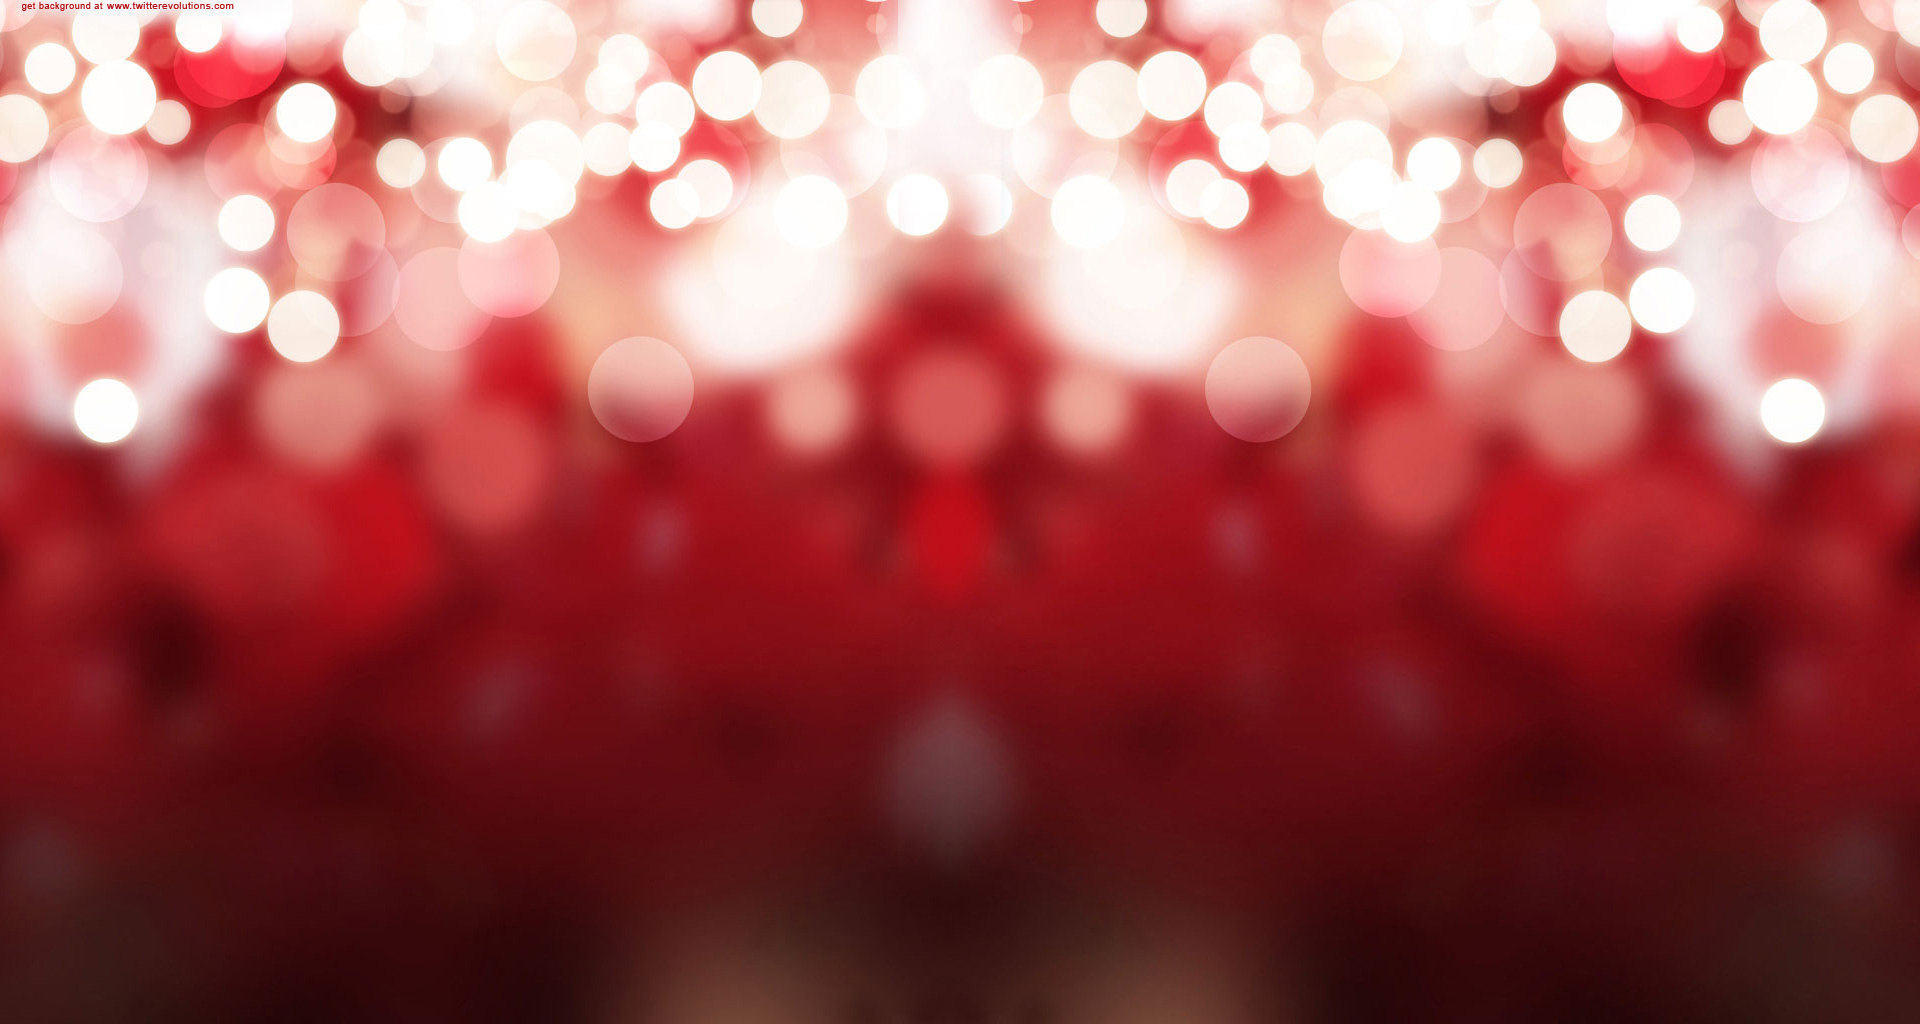 Red Christmas lights Twitter background   Twitterevolutions 1920x1024